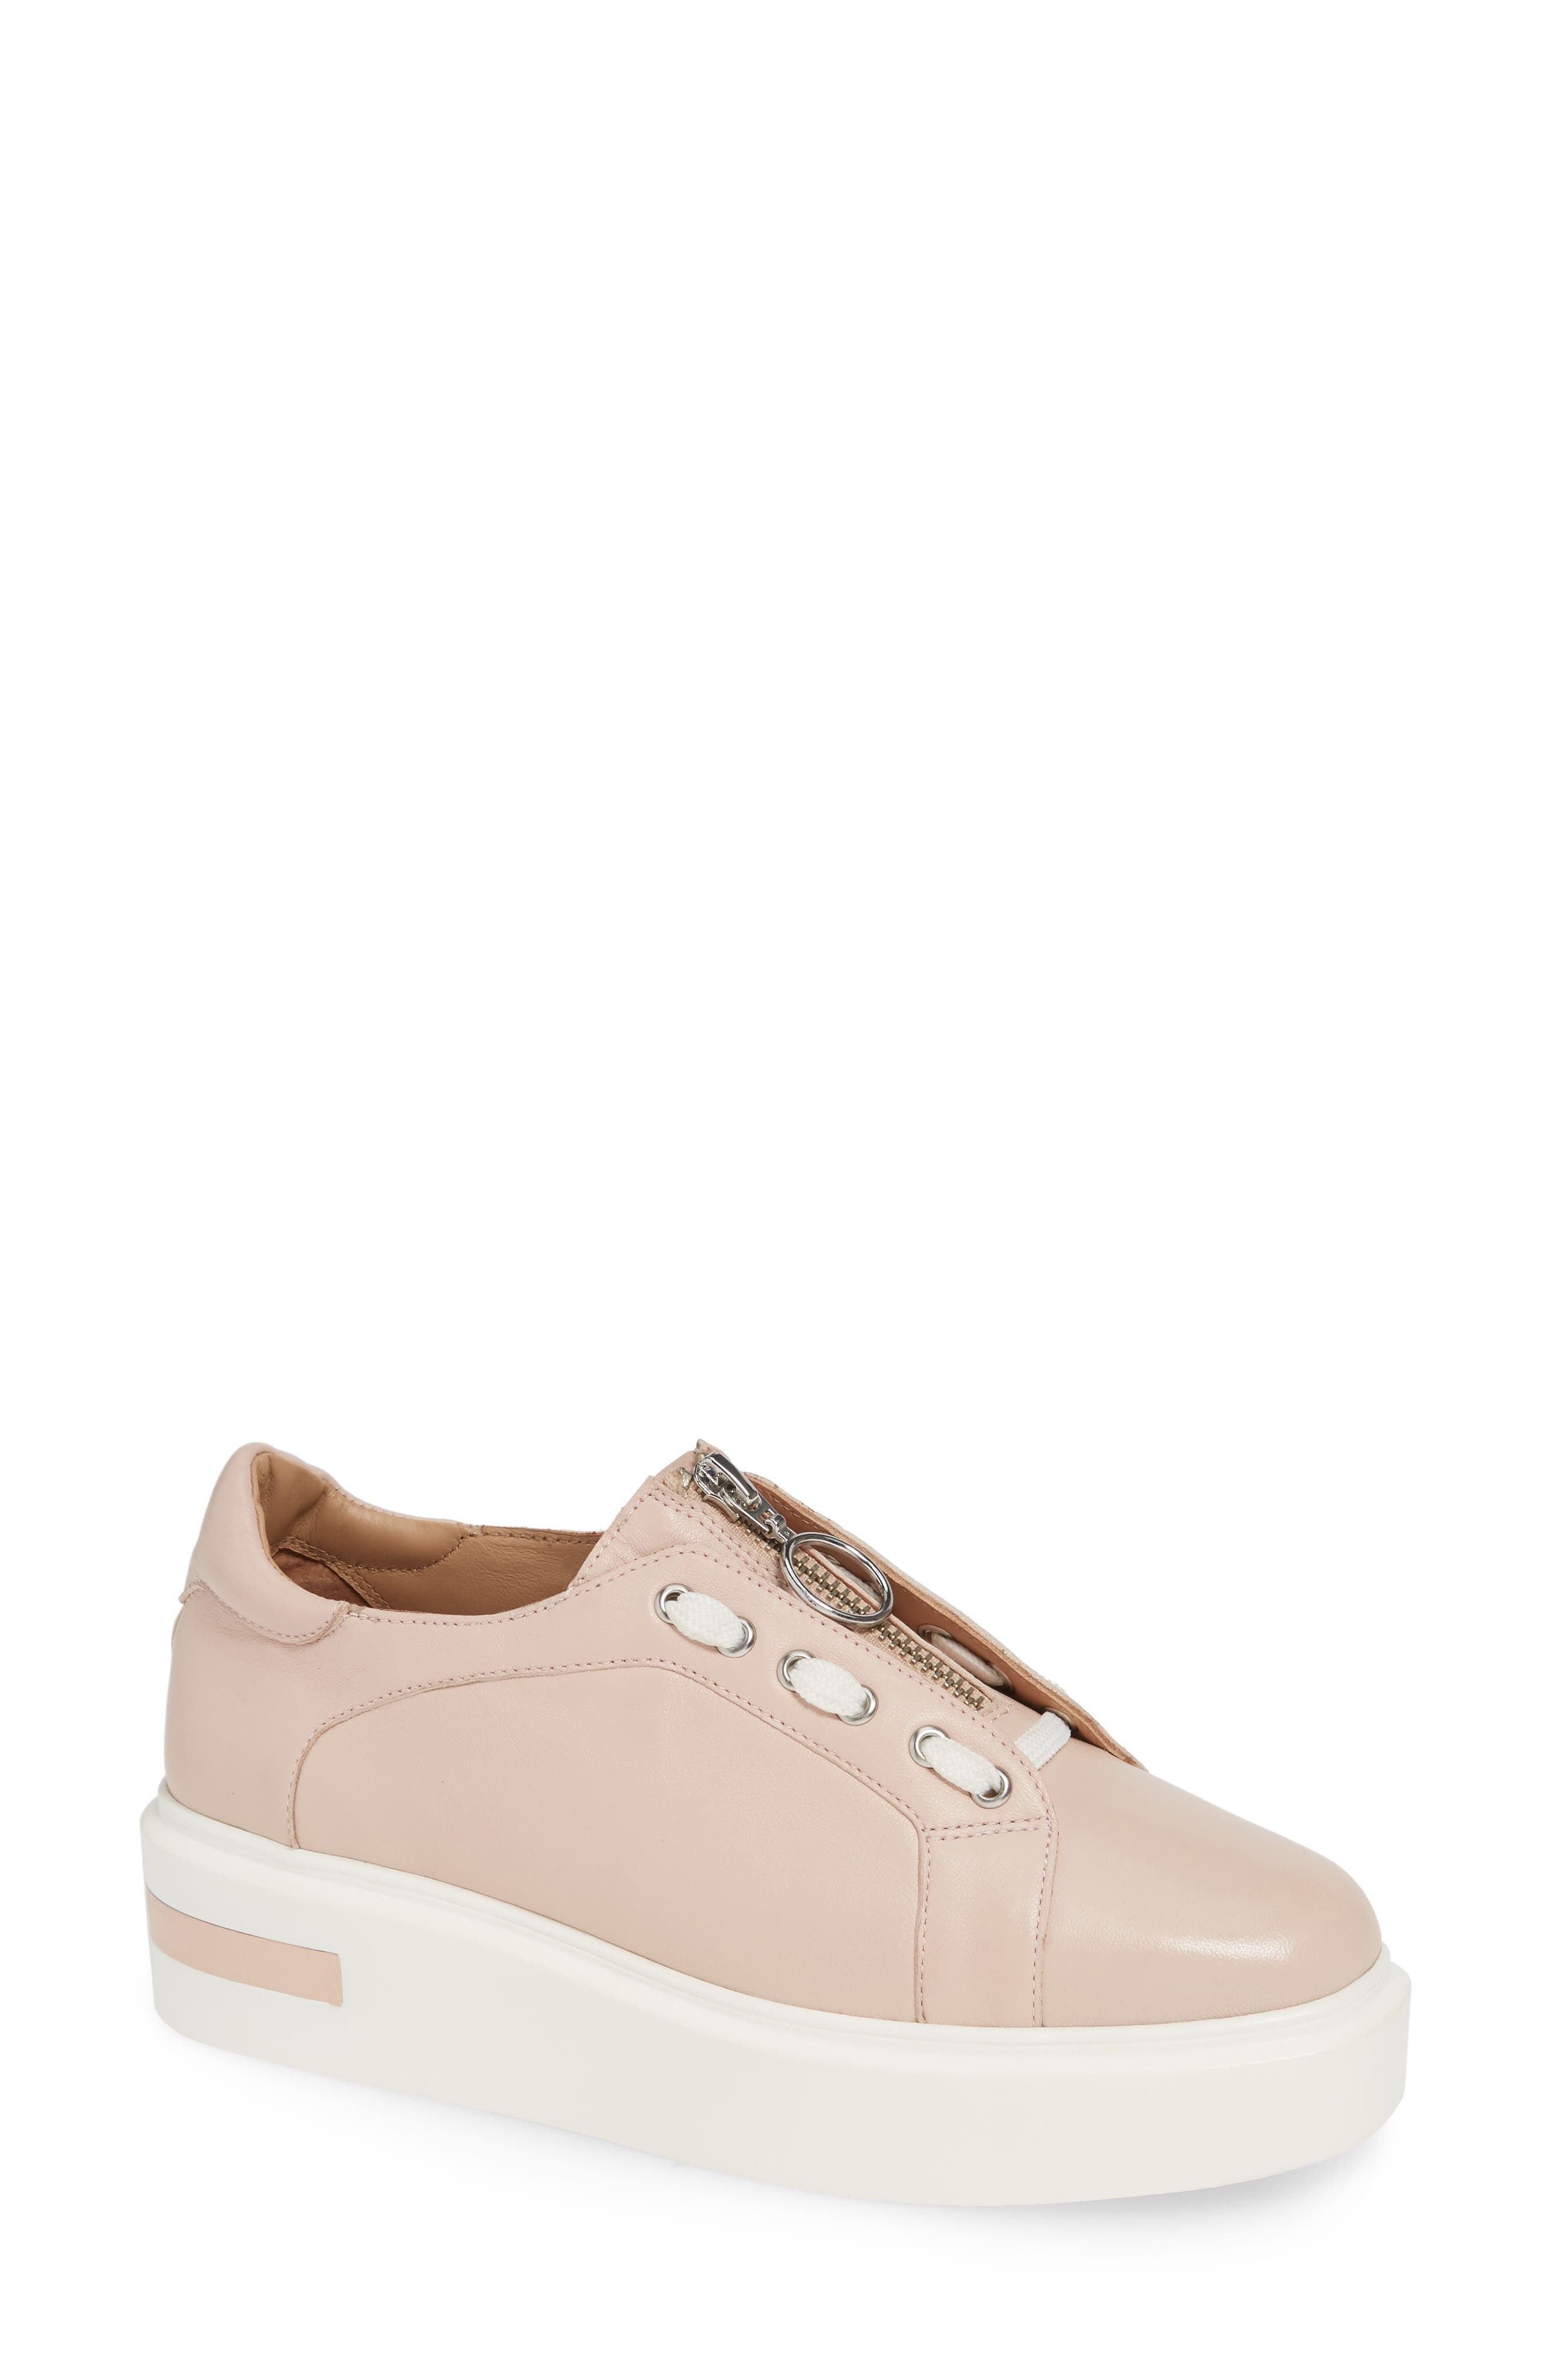 LINEA PAOLO Killian Platform Sneaker, Main, color, BLUSH LEATHER